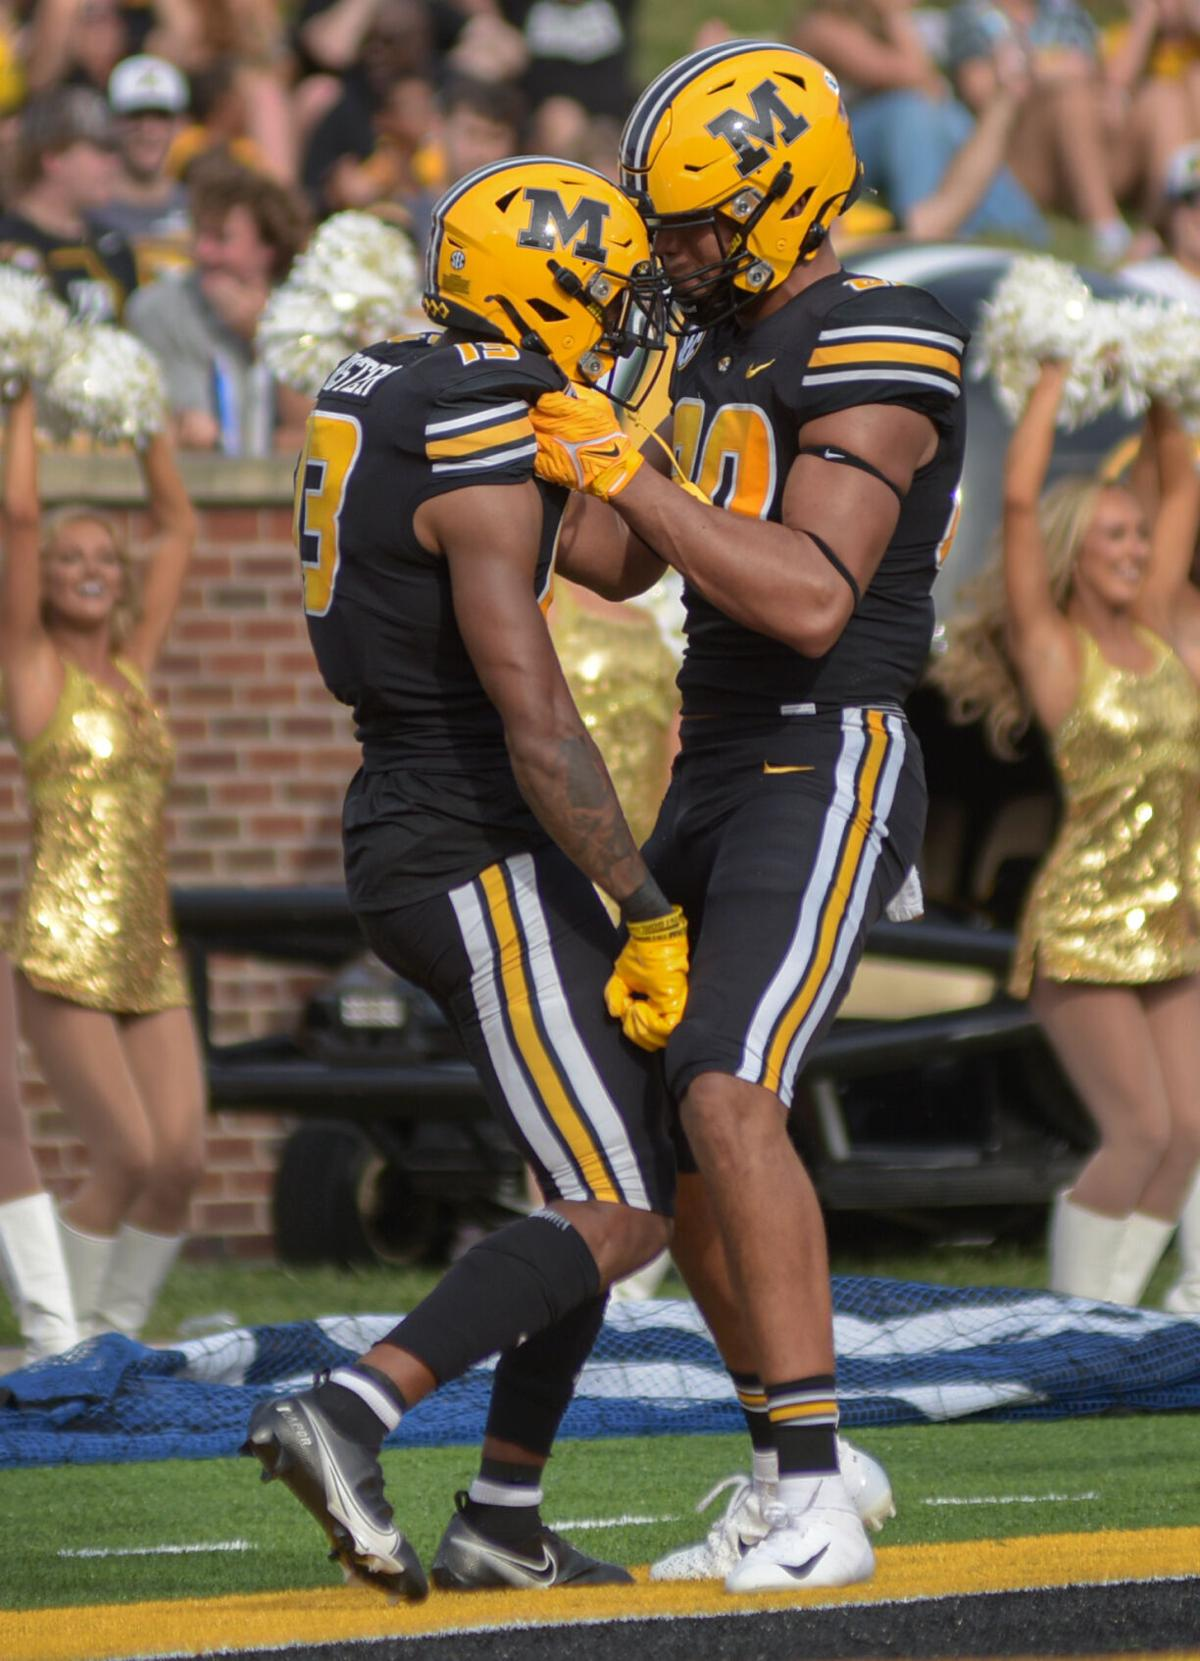 JJ Hester, left and Messiah Whiteside celebrate after a touchdown Saturday at the Faurot Field at Memorial Stadium.